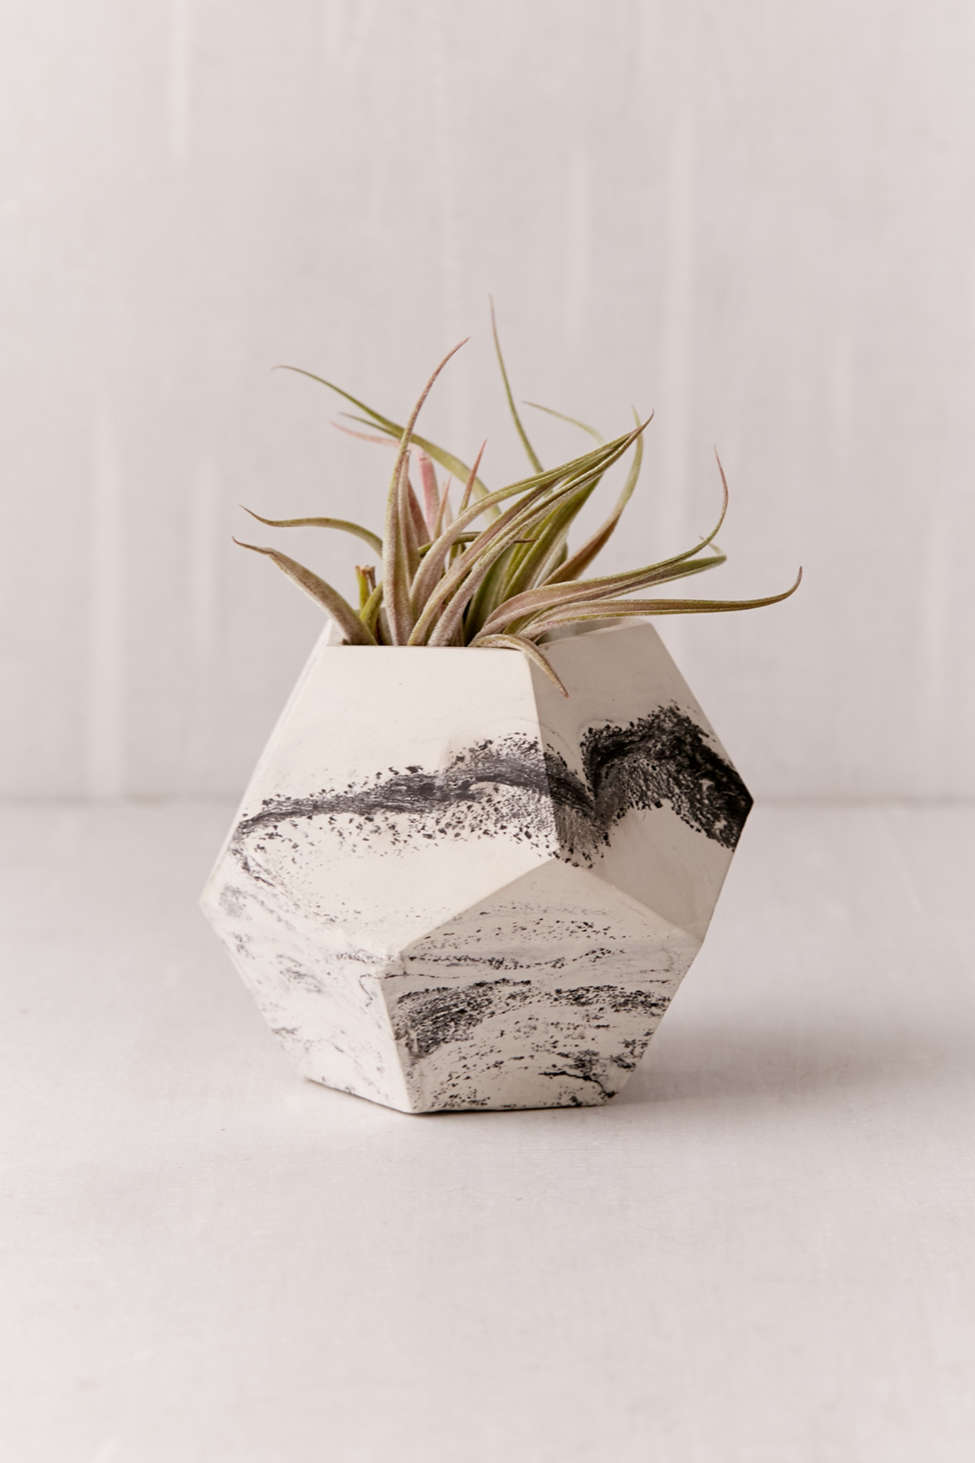 Slide View: 1: Concrete Geometric X UO Dodecahedron Marble Planter